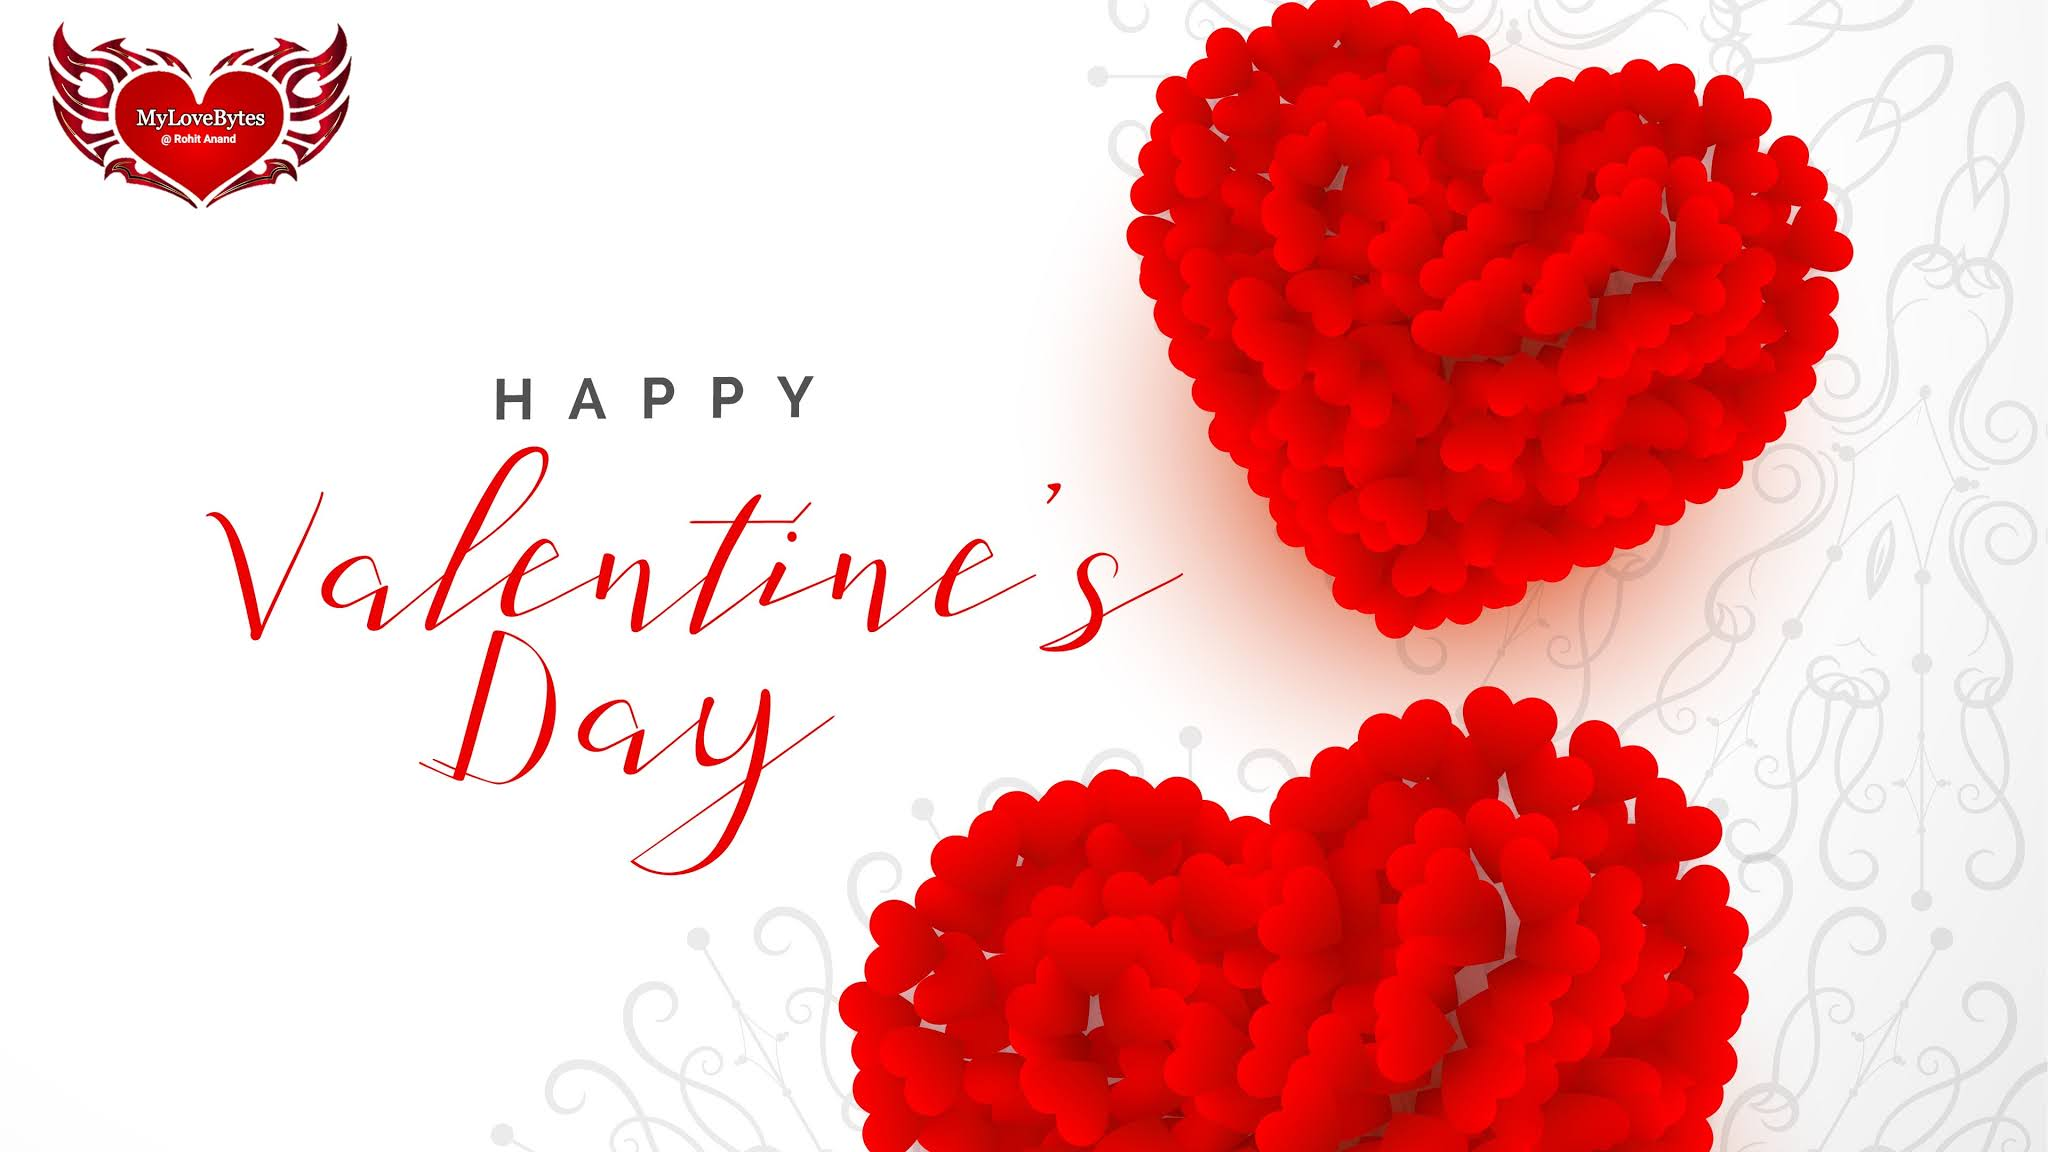 Valentine Day, Sweet Valentine flowers,  Happy VAlentine day backgrounds and wallpapers for ipad iphone smartphones desktop computers